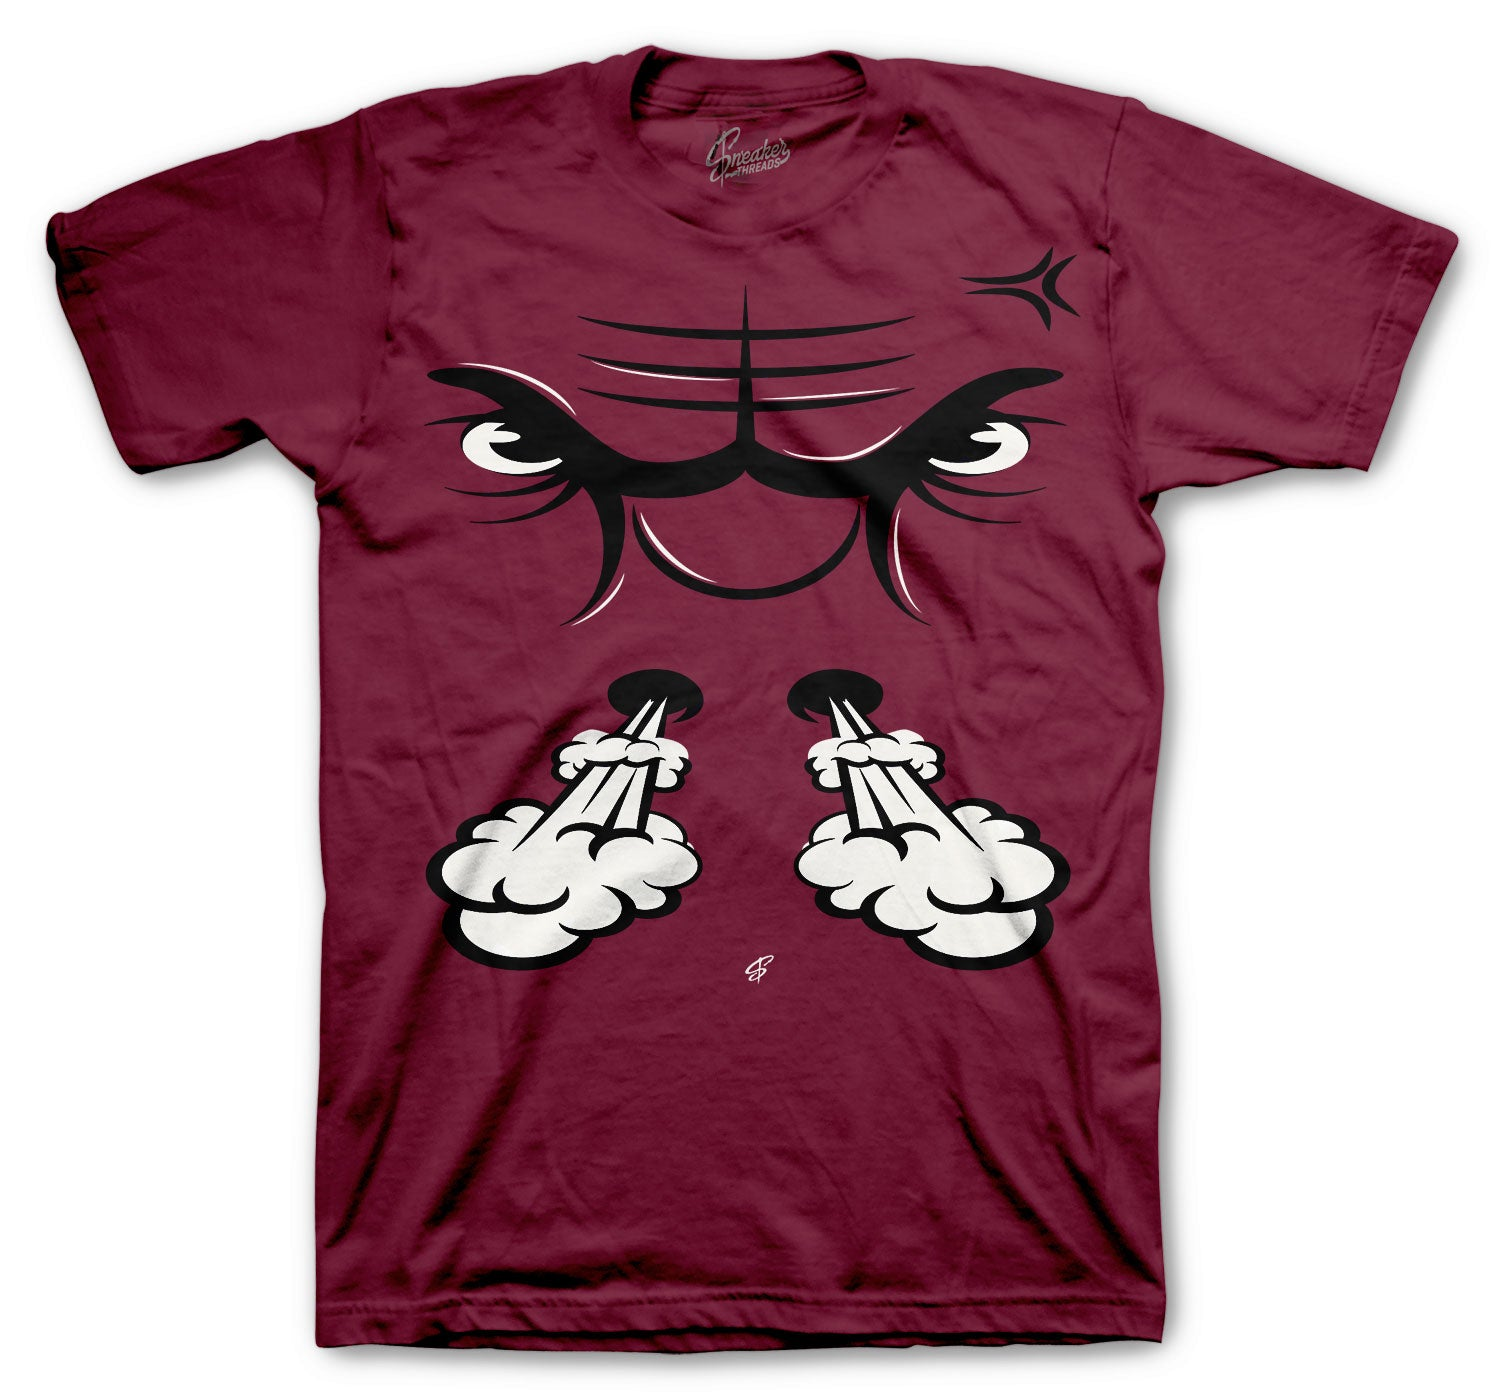 Jordan 8 Burgundy sneaker matching with mens shirts